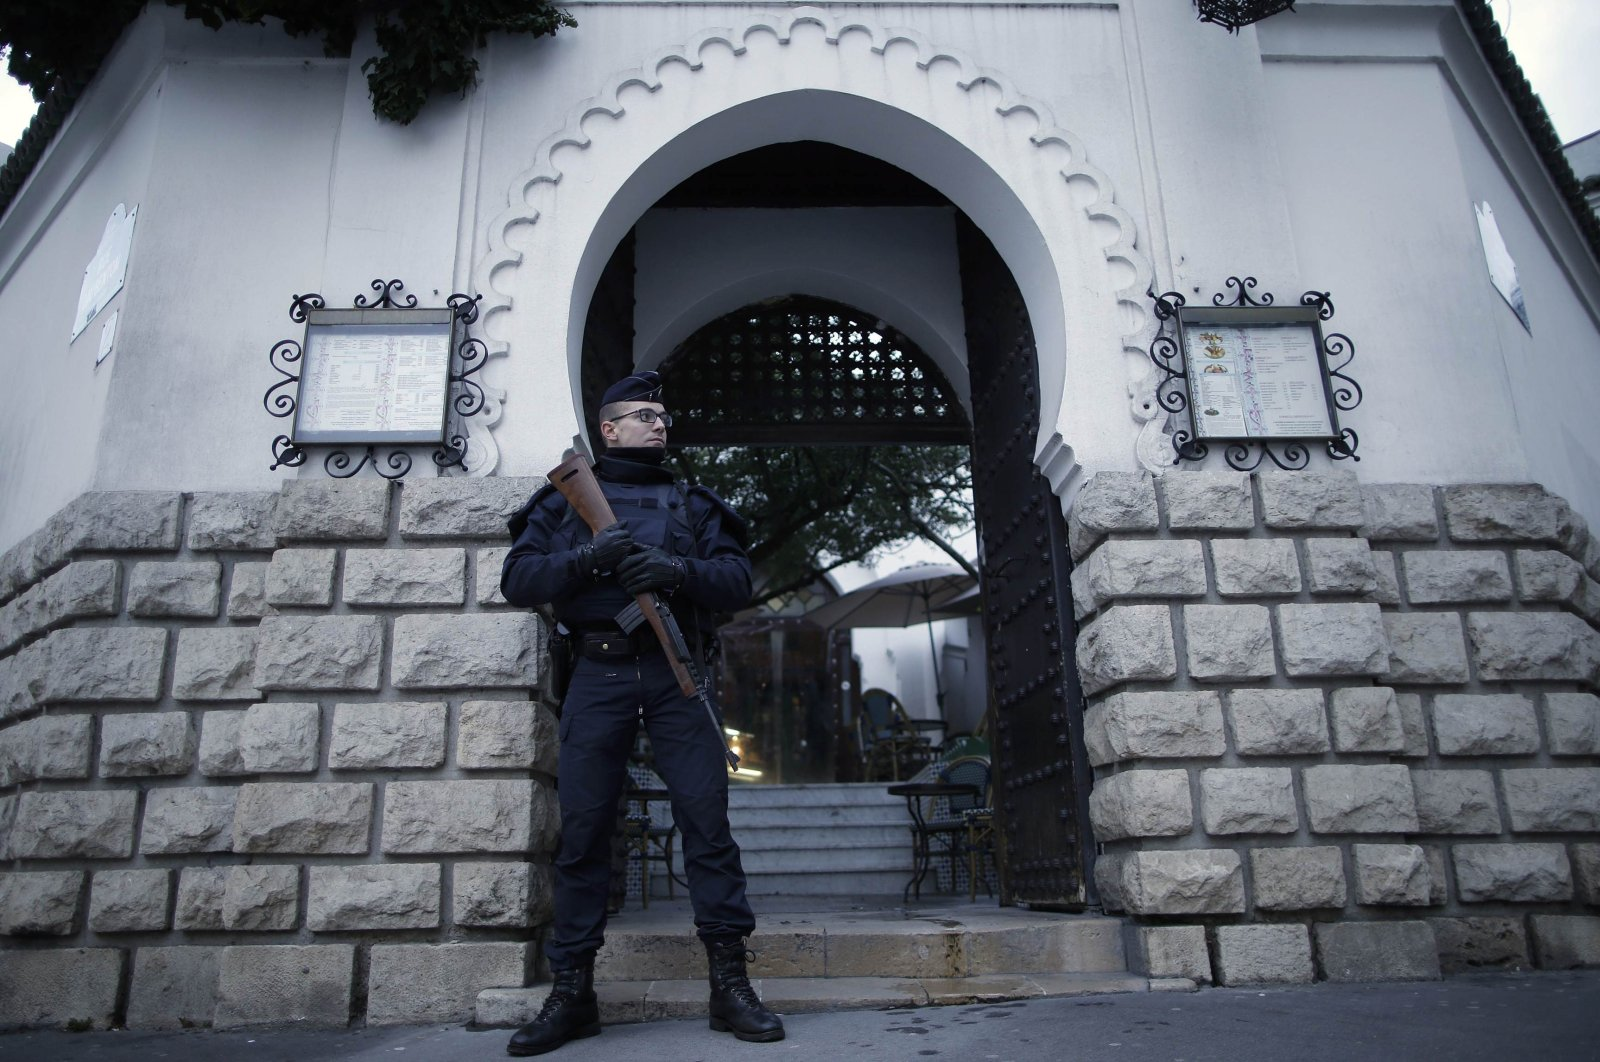 A French police officer stands guard in front of the entrance of the Paris Grand Mosque, Paris, France, Jan. 14, 2015. (Reuters Photo)